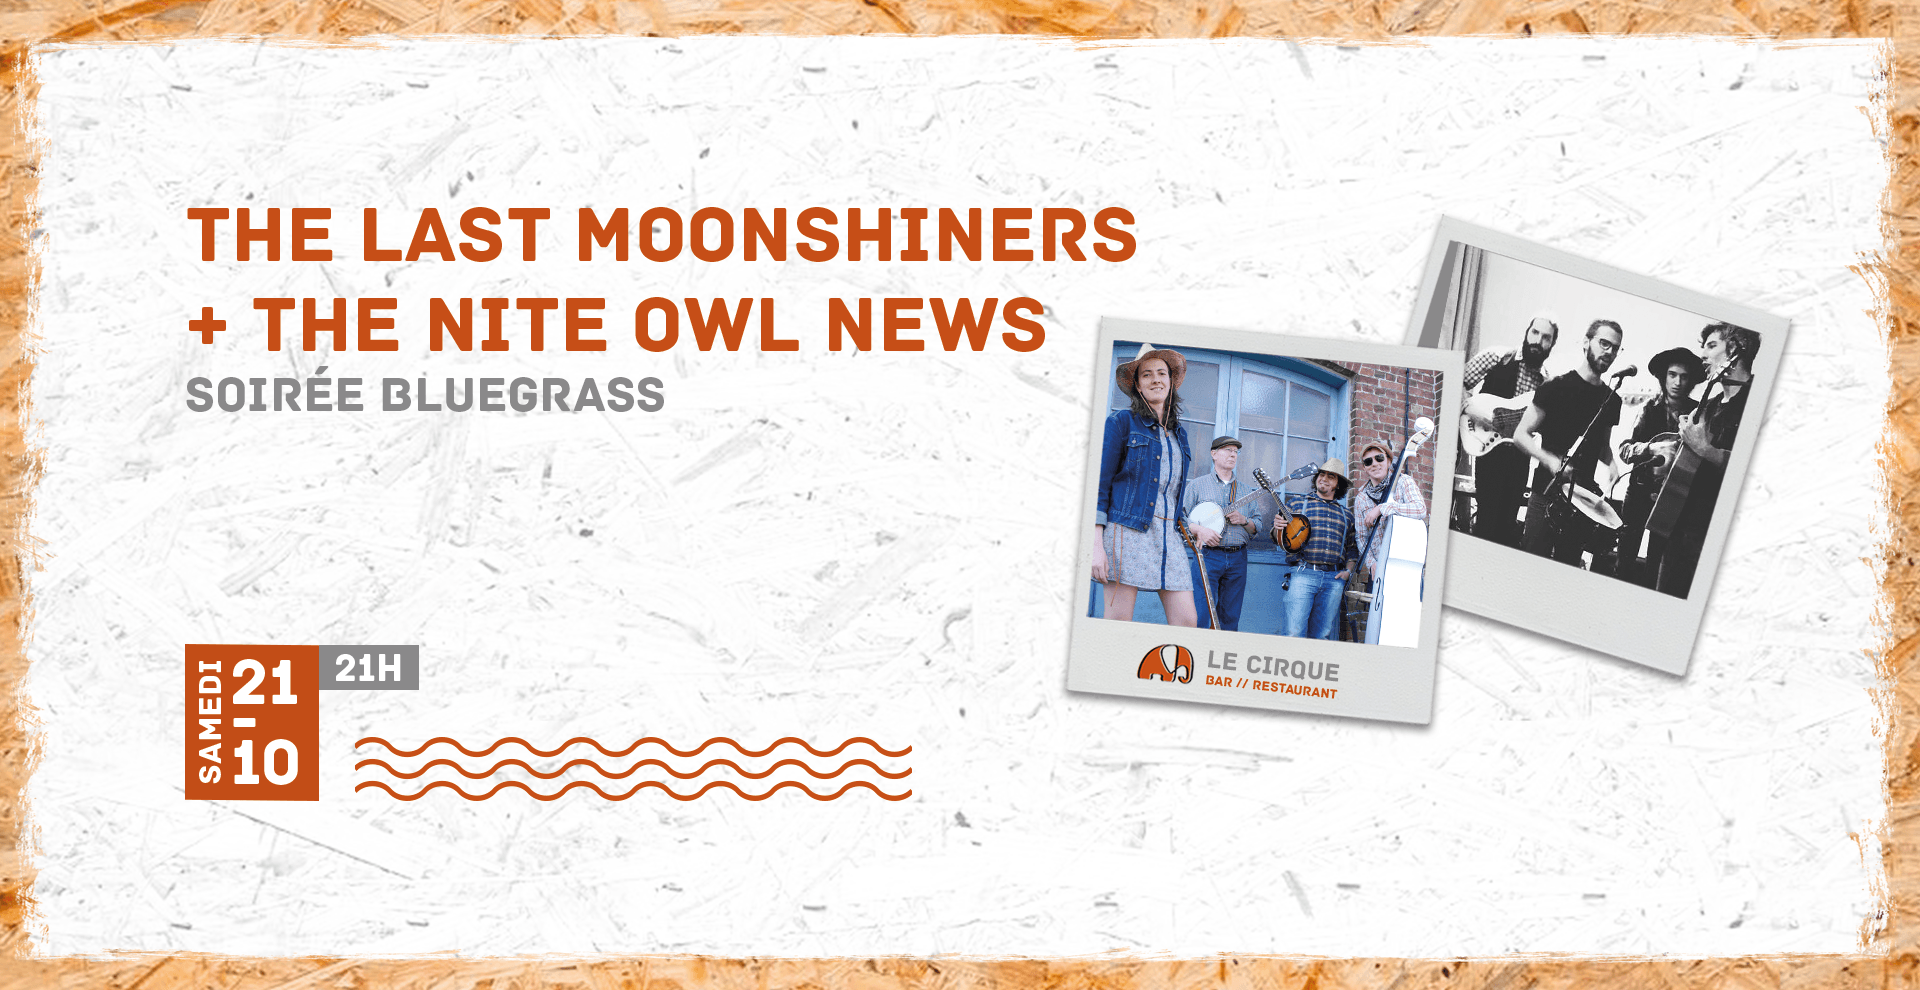 Soirée Blue Grass : The Last Moonshiner + The Night Owl News